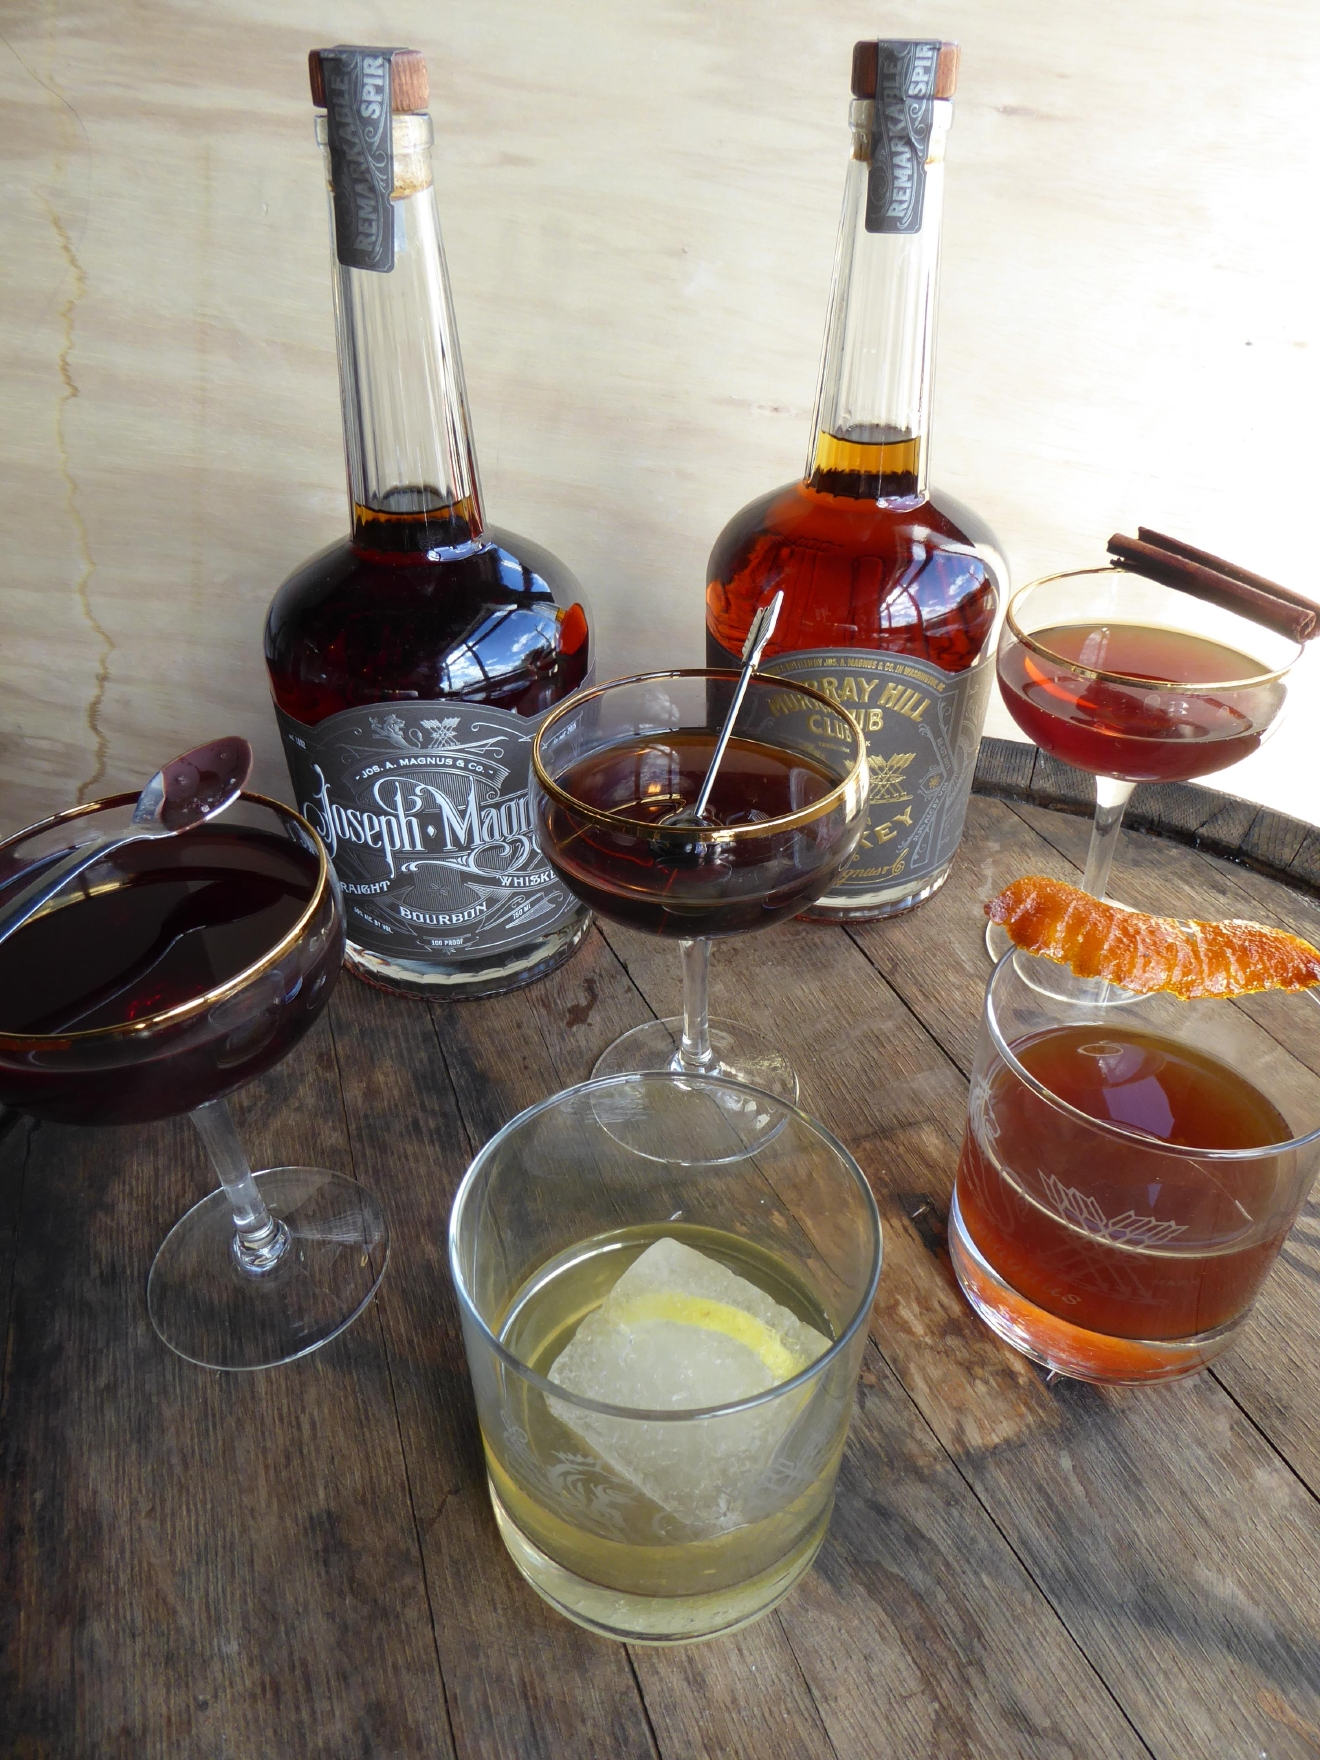 In just six years, we've got five whiskey makers, one rum distillery (with another one on the way), a cidery and more liqueurs than a city of our size should rightly demand. We realized an enterprising home bartender could mix up all kinds of classic cocktails using nothing but District-bred booze. (Image: Doug Van Sant)<p></p>